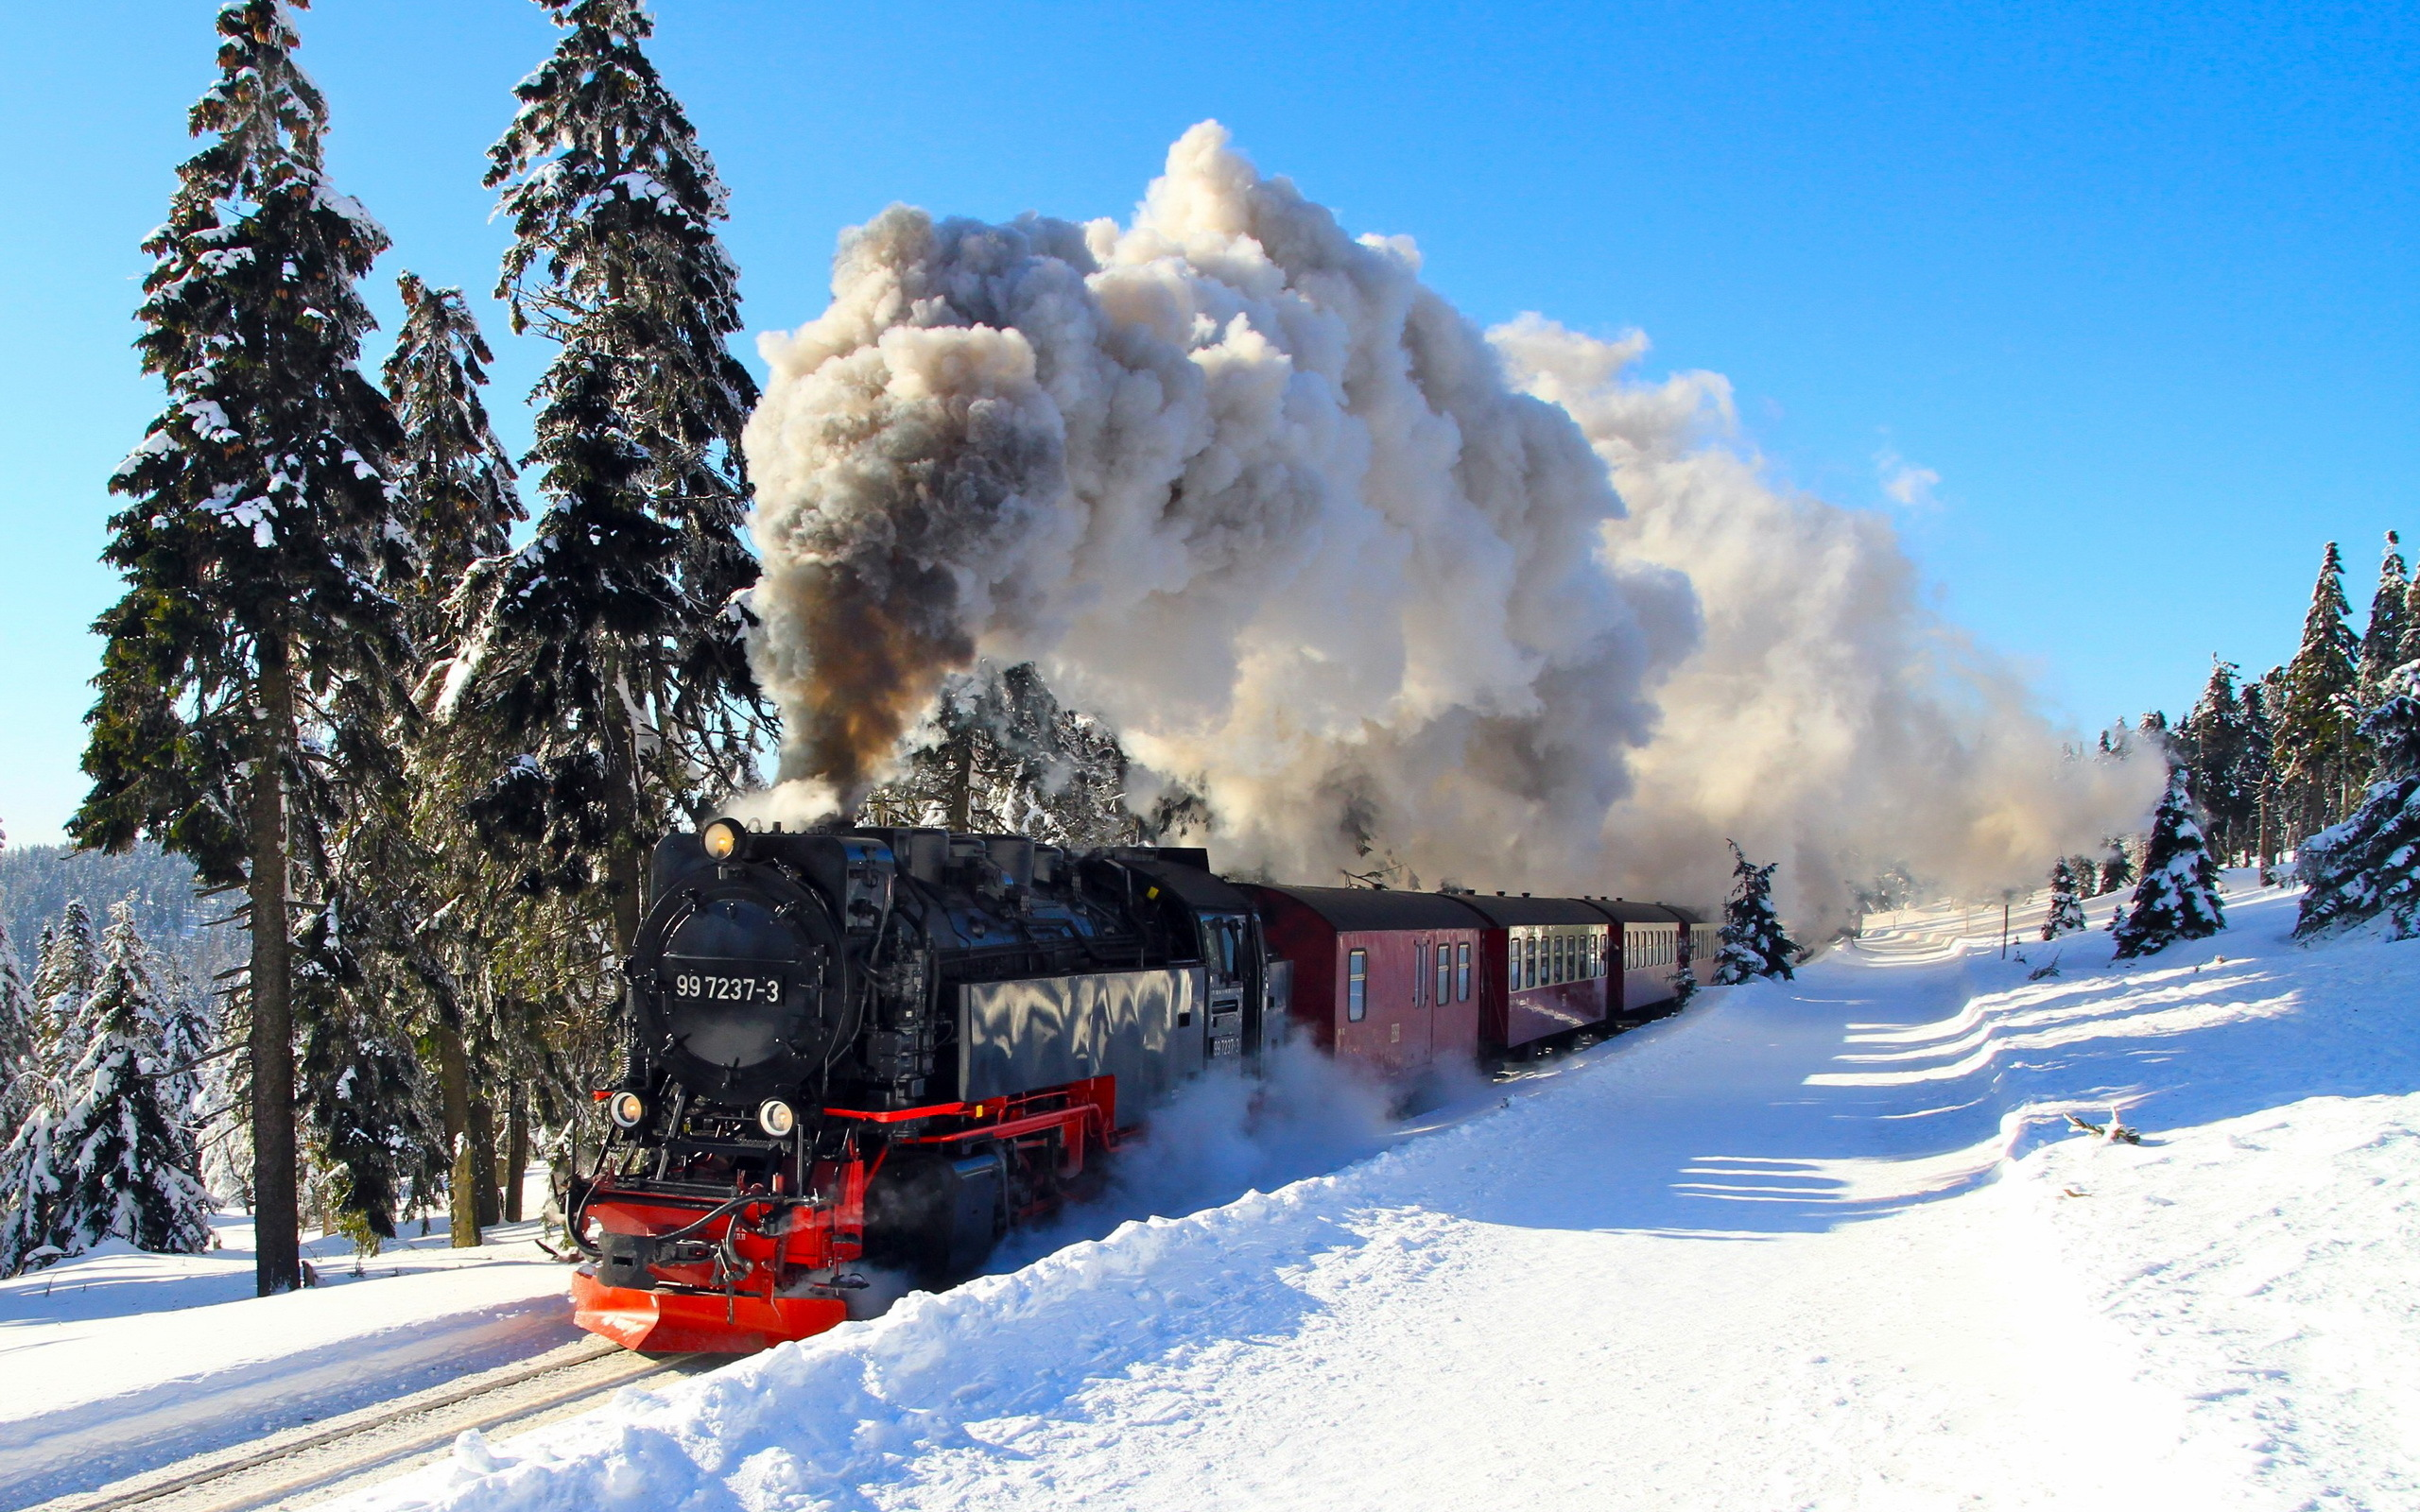 Essay on to a locomotive in winter